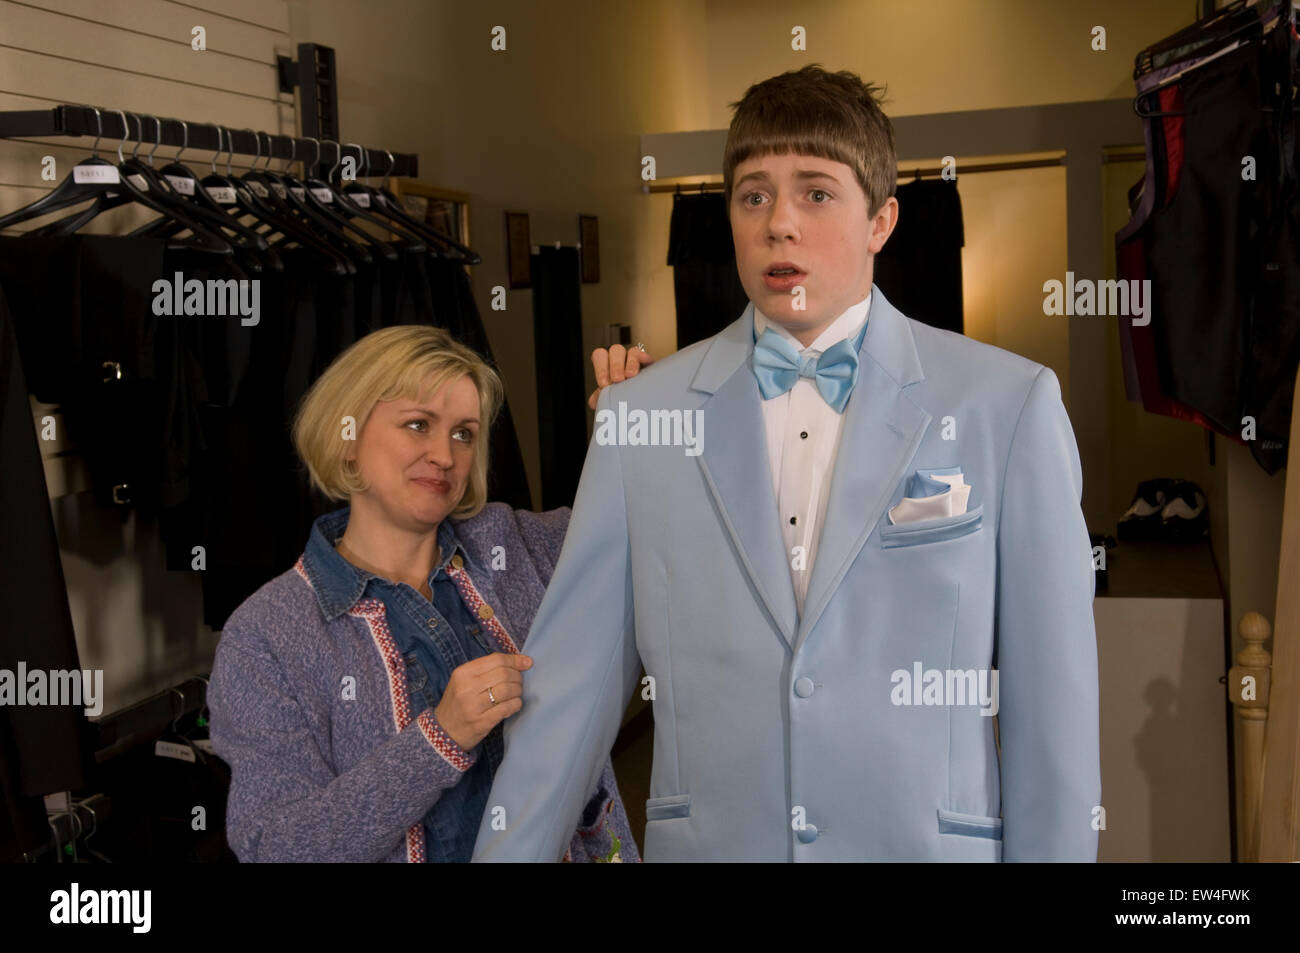 Teenage boy wearing blue suit jacket in tux shop looks worried as his mother adjusts his sleeve Madison Wisconsin. - Stock Image